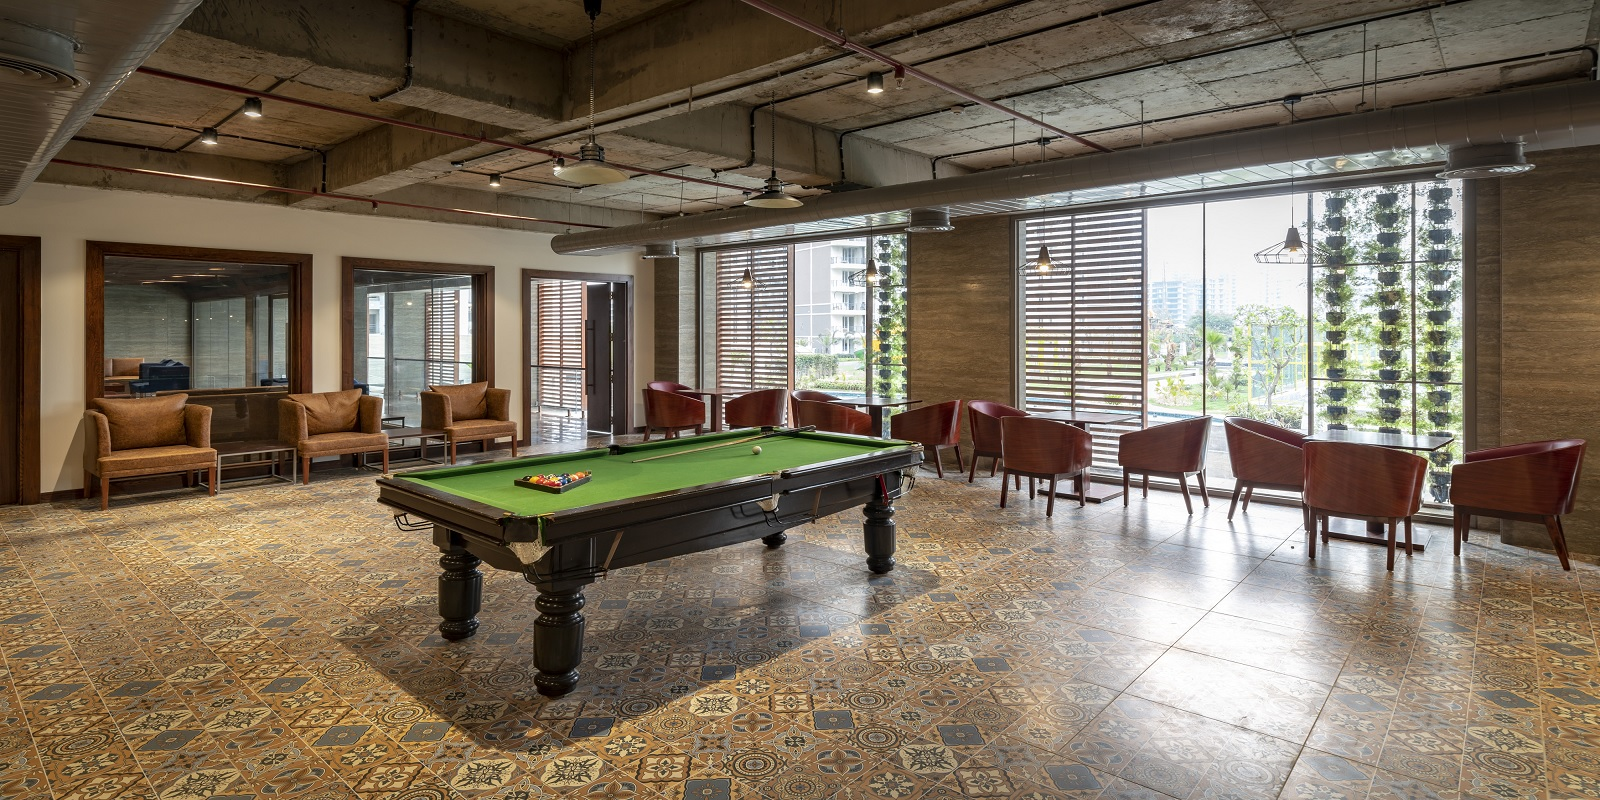 amenities-features-Picture-great-value-sharanam-2759212